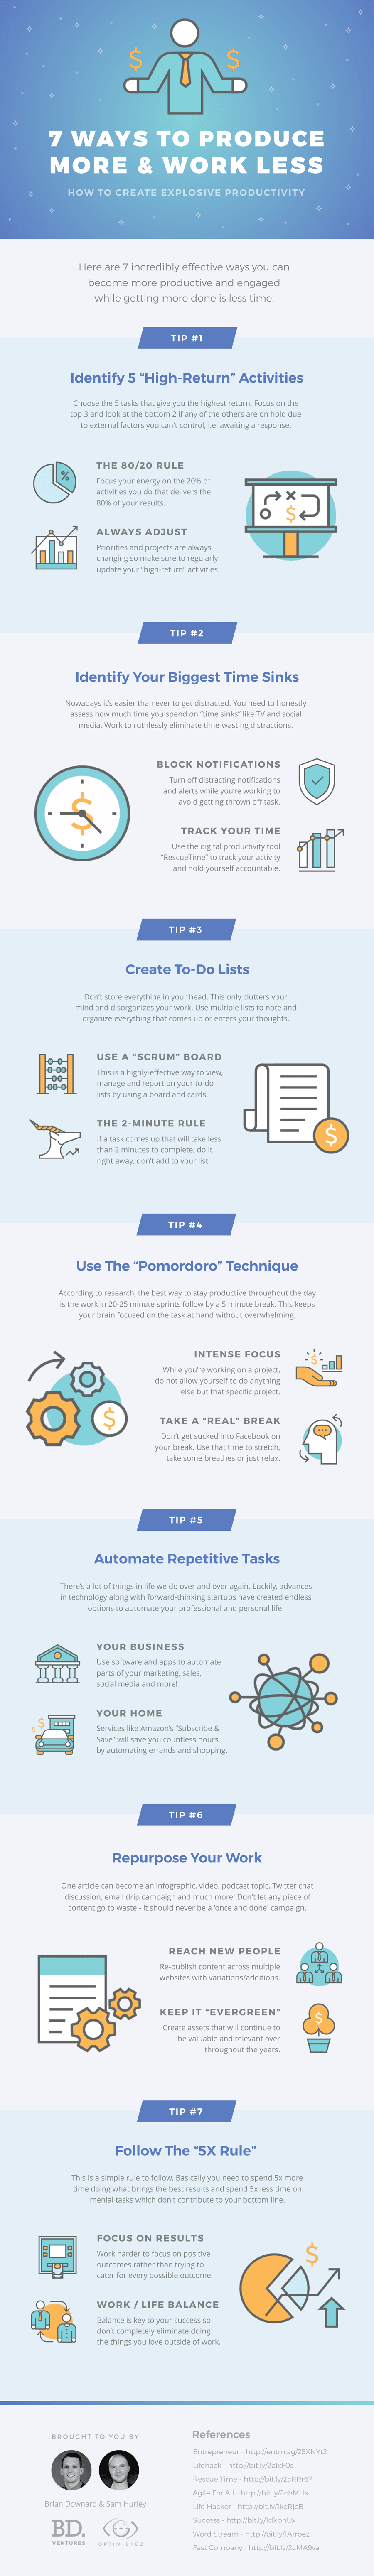 7 Ways To Produce More & Work Less - Infographic